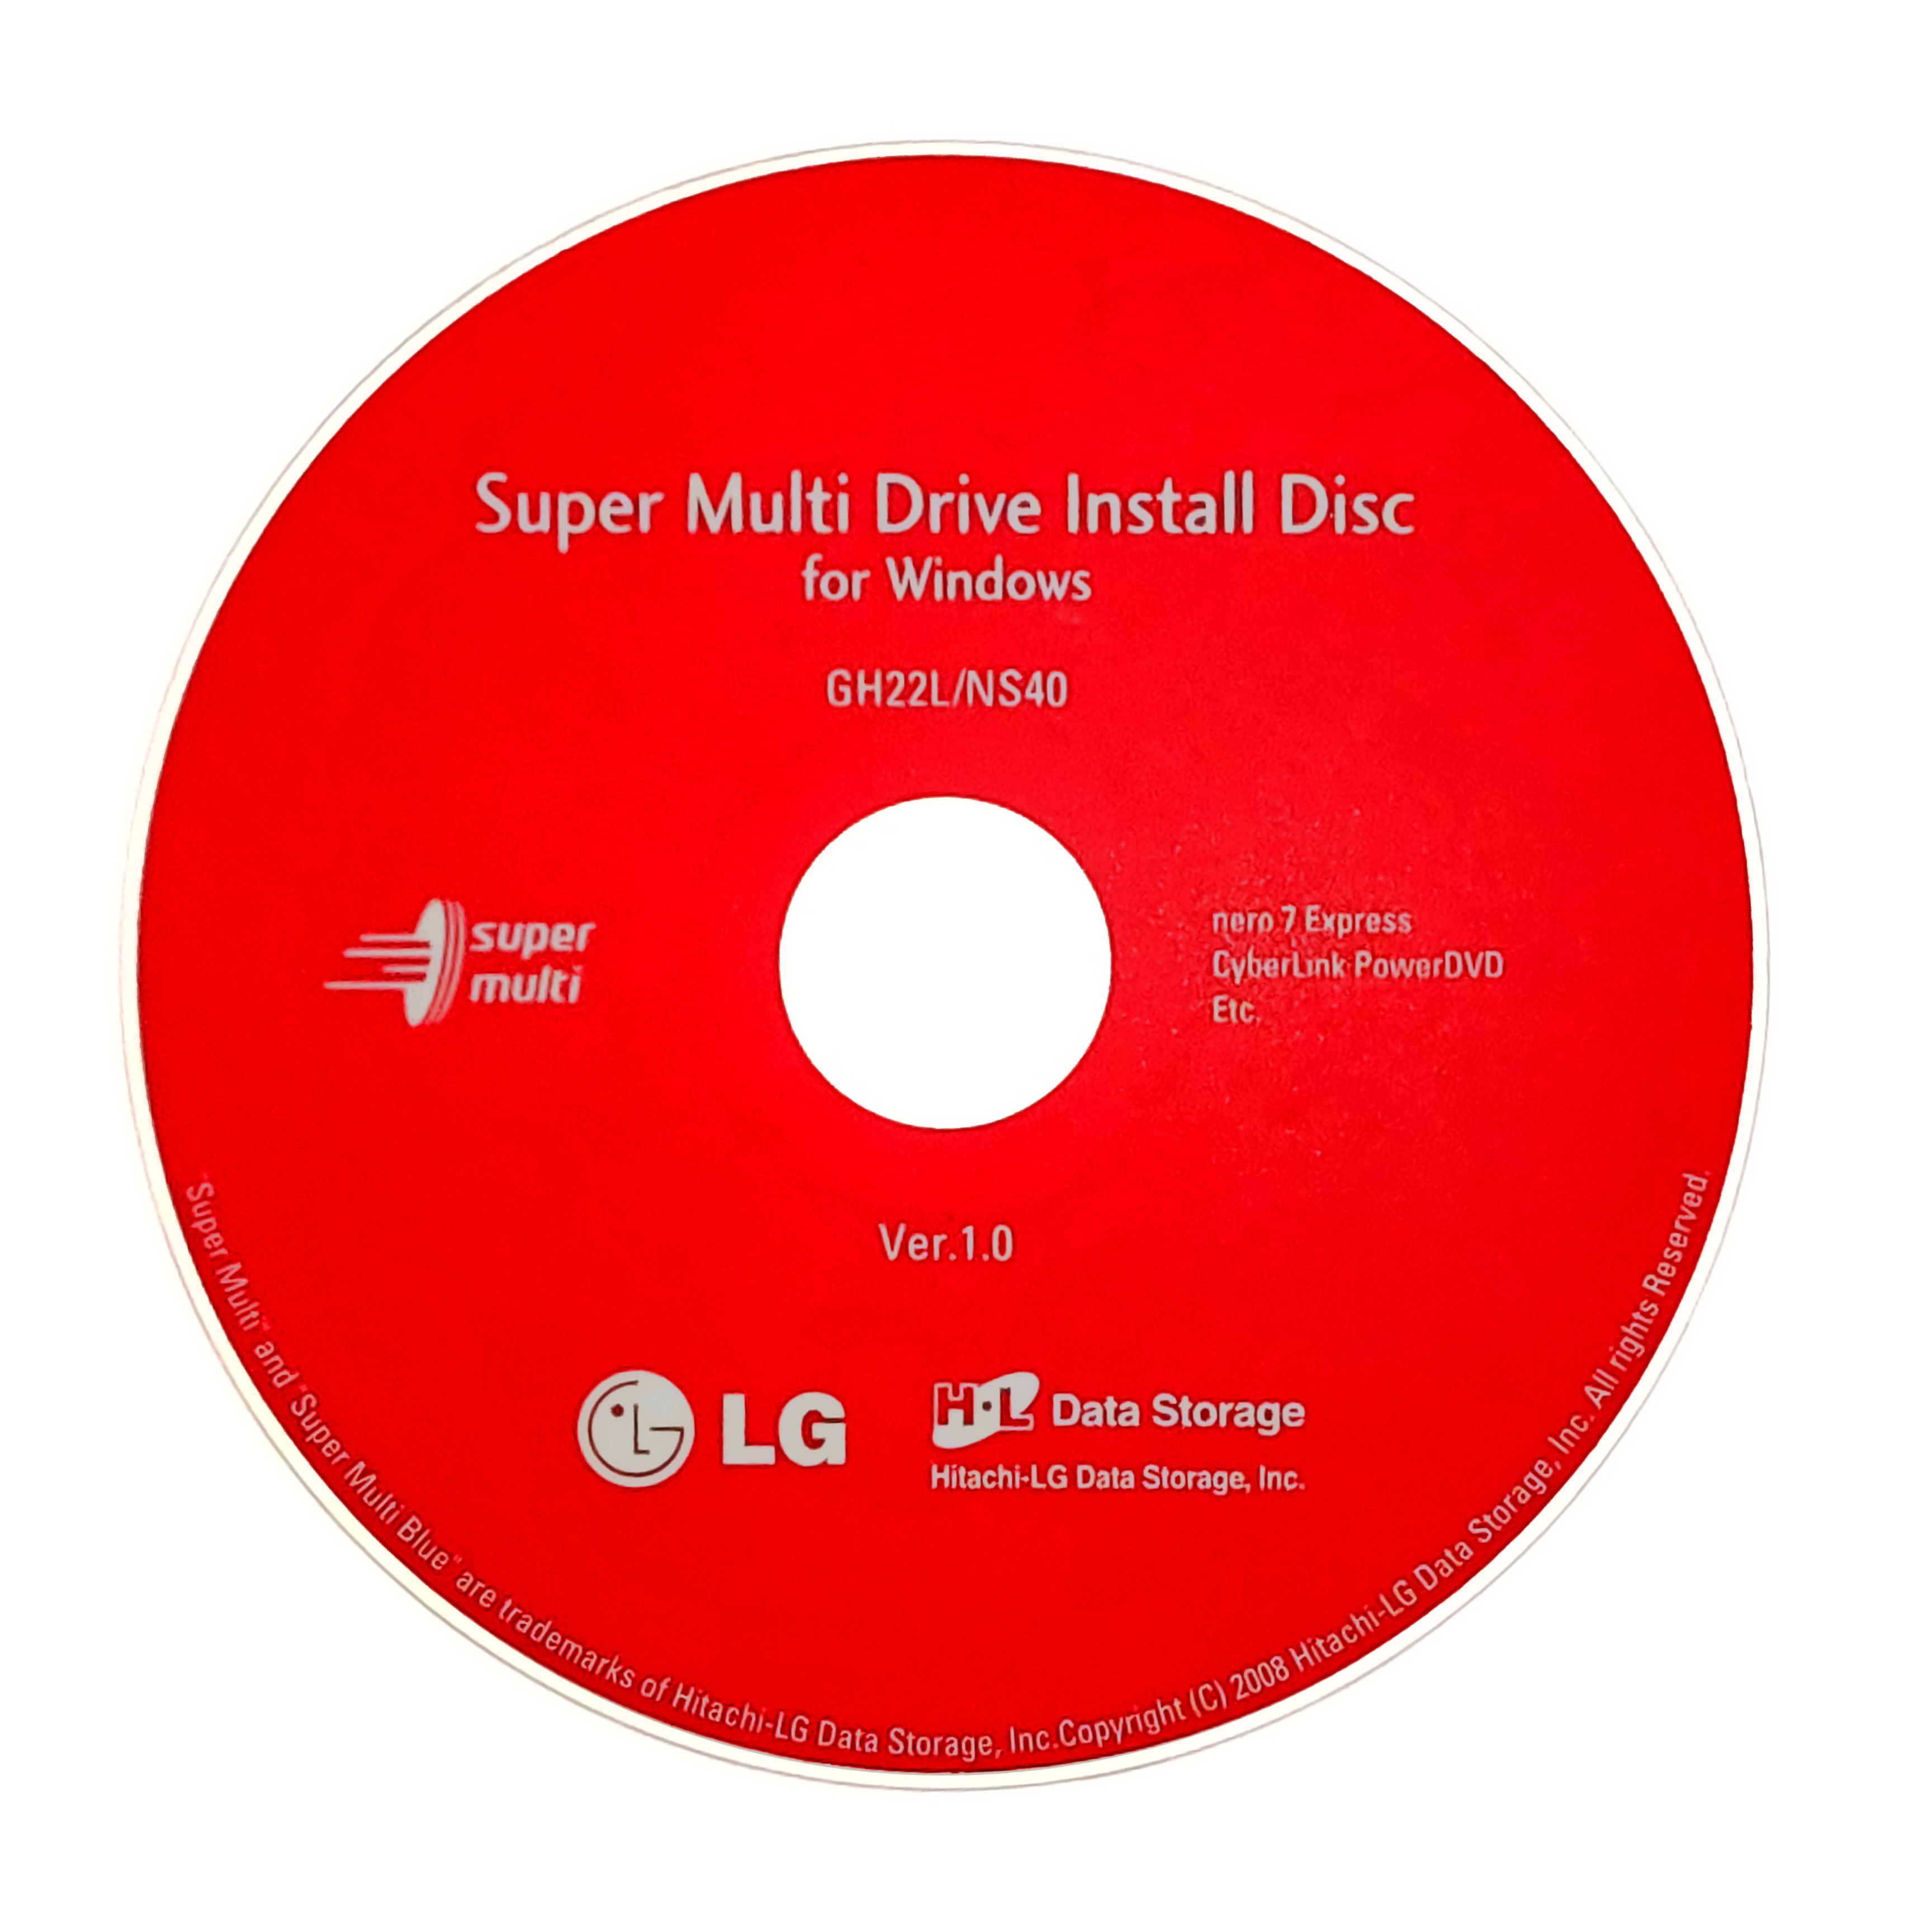 Super Multi Drive Install Disc